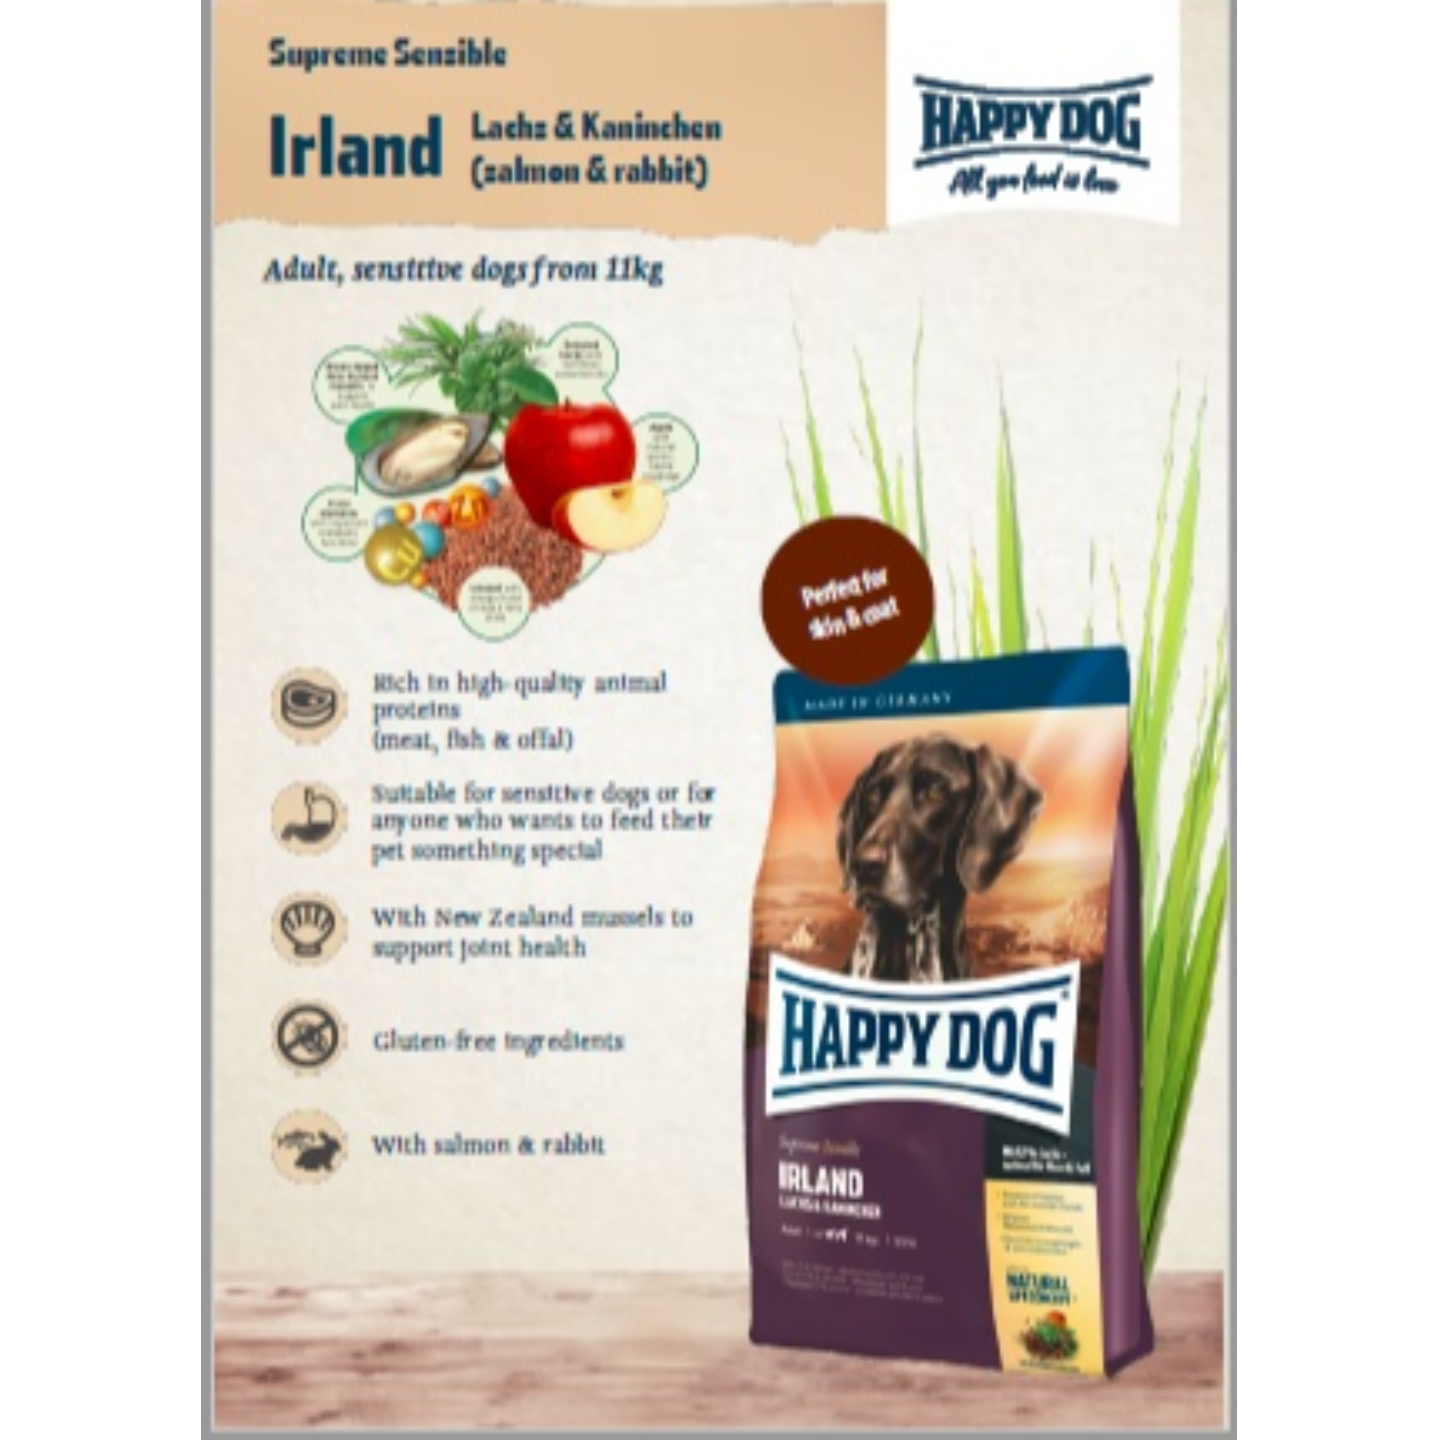 Happy Dog Adult Supreme Sensible - Ireland. Salmon & Rabbit - 4Kg x 03 bags